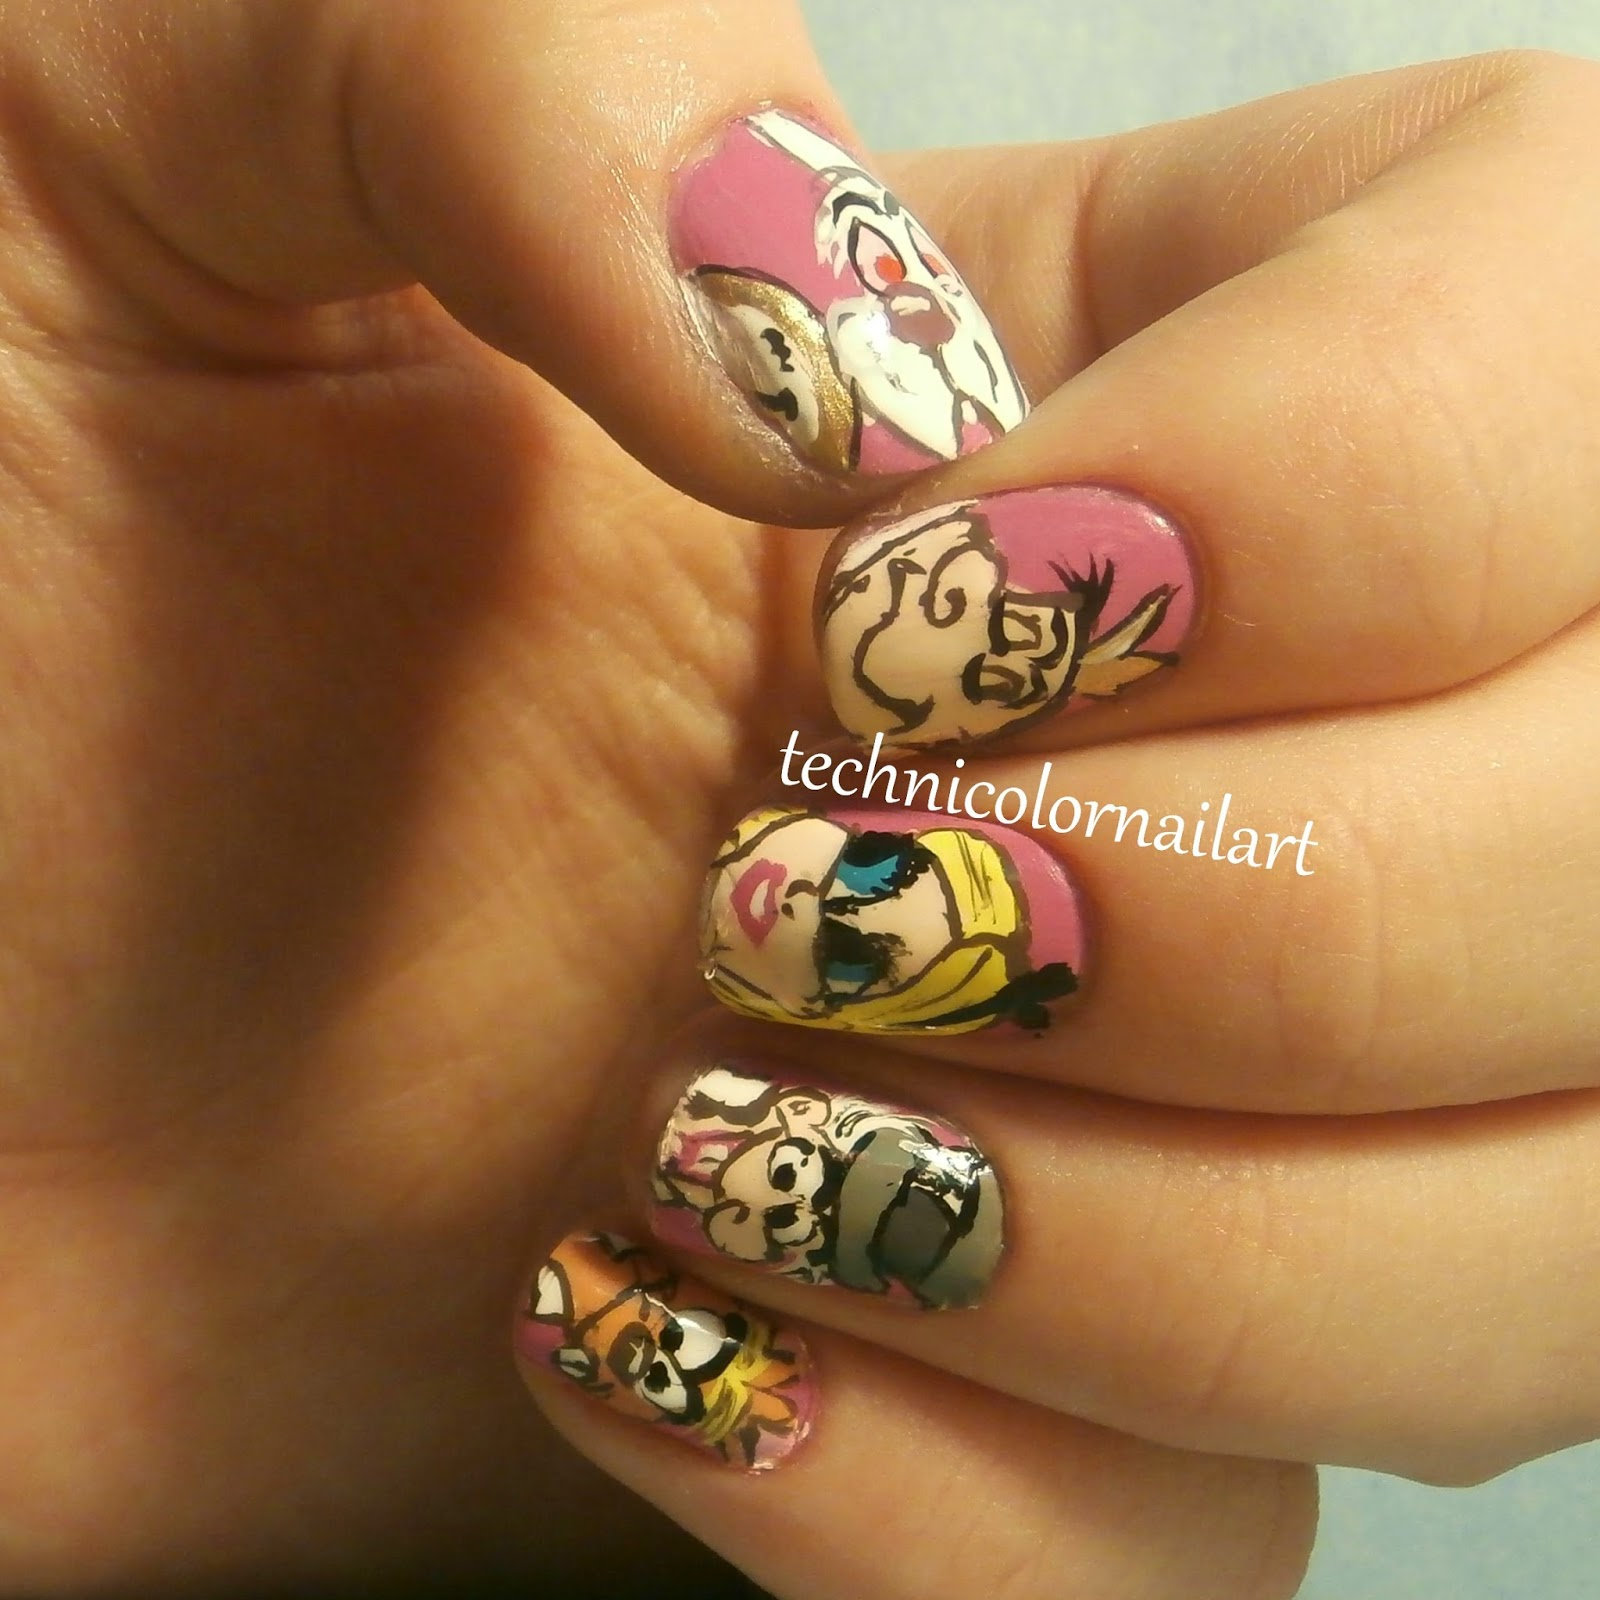 Technicolor Nail Art: NCC: Alice in Wonderland Nail Art